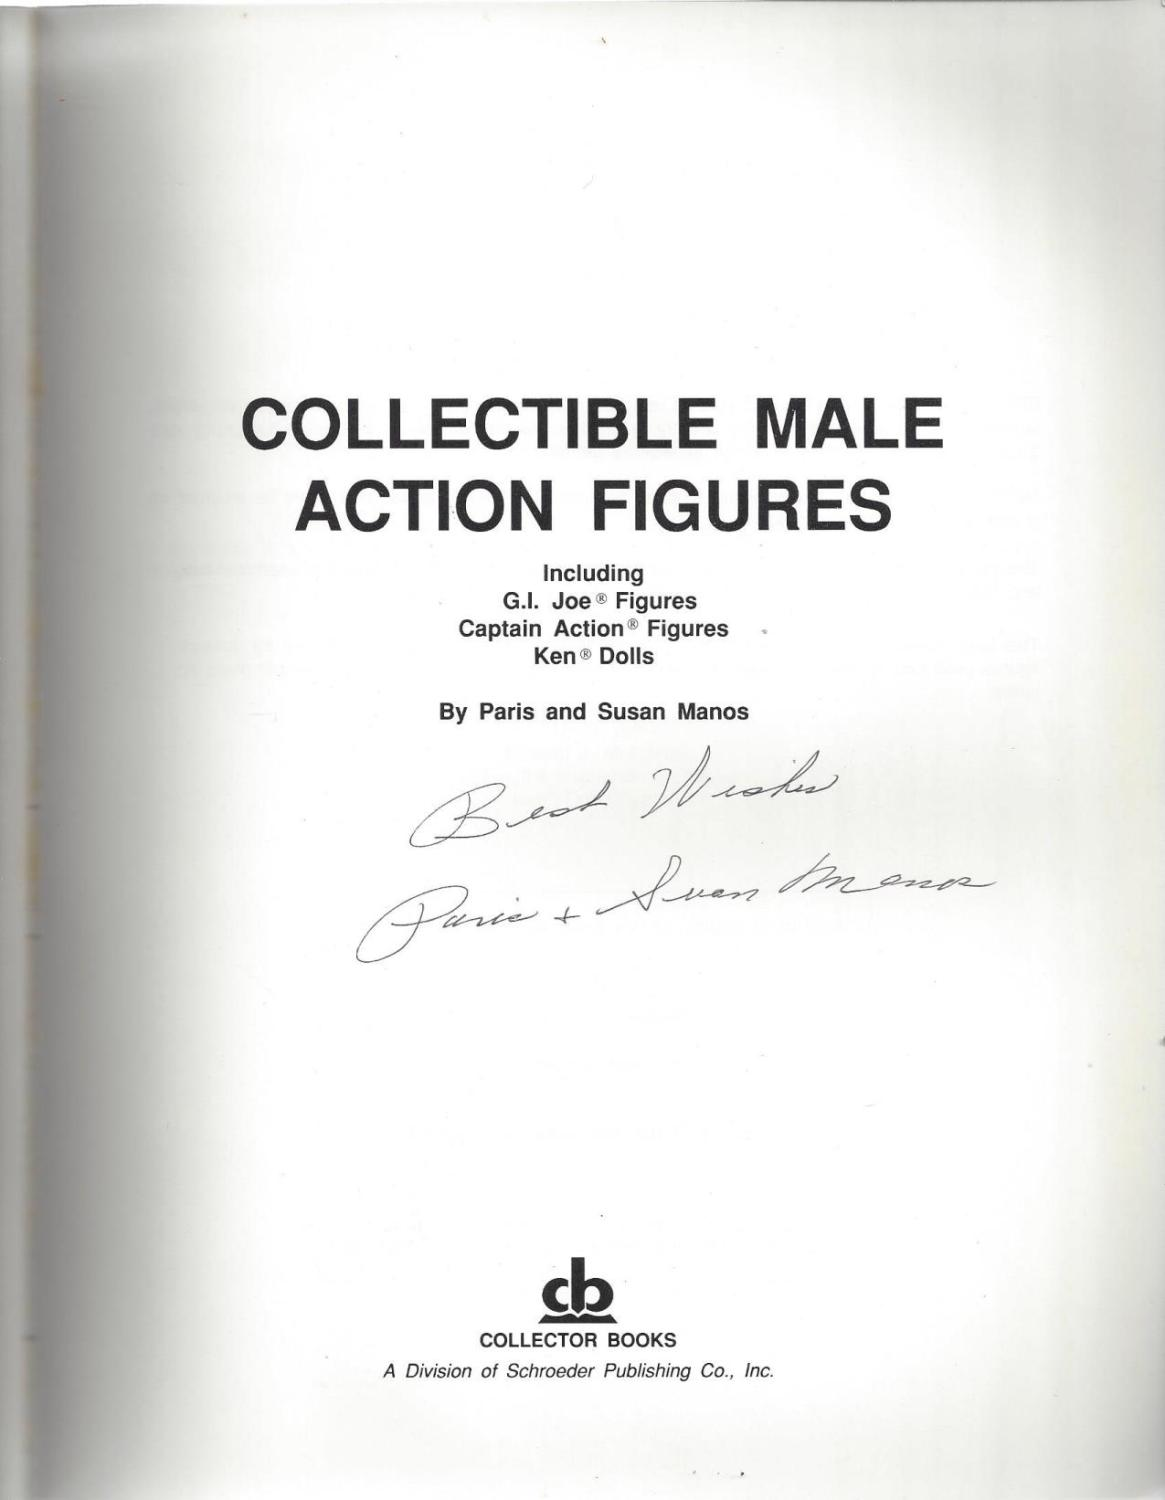 Collectible Male Action Figures: Including G.I. Joe Figures, Captain Action Figures, Ken Dolls, Manos, Paris; Manos, Susan